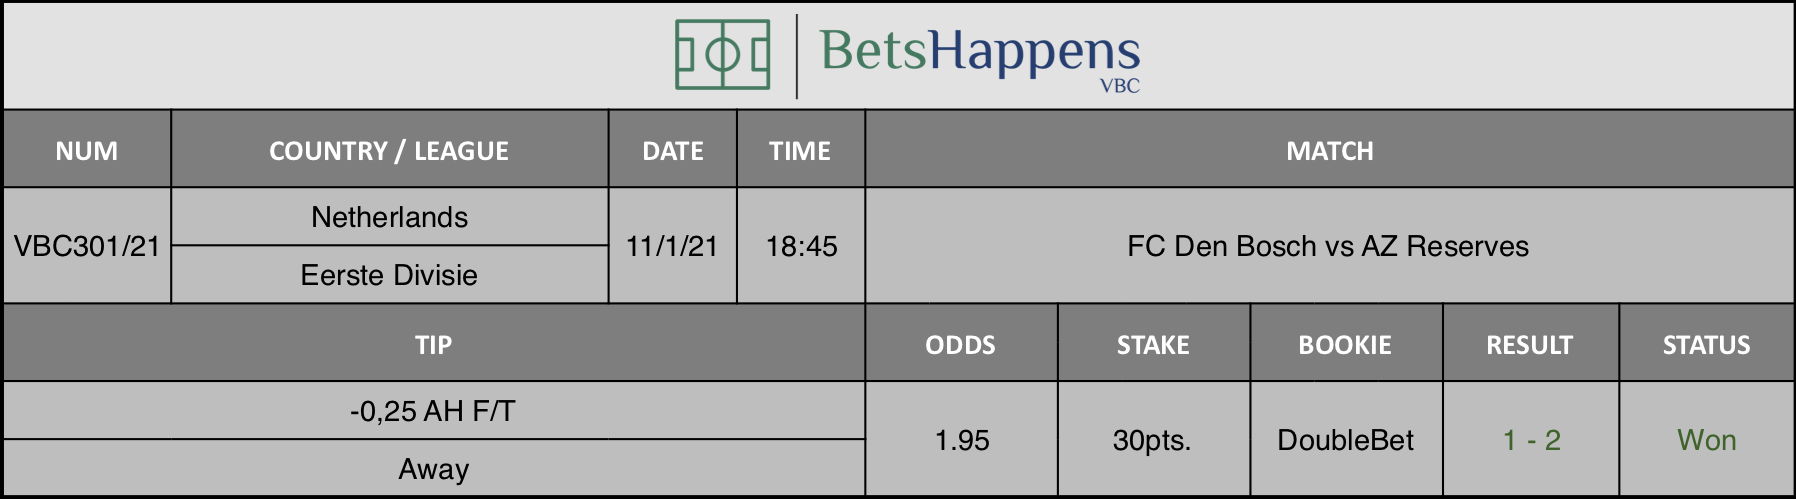 Results of our tip for the FC Den Bosch vs AZ Reserves  match where -0,25 AH F/T Away is recommended.